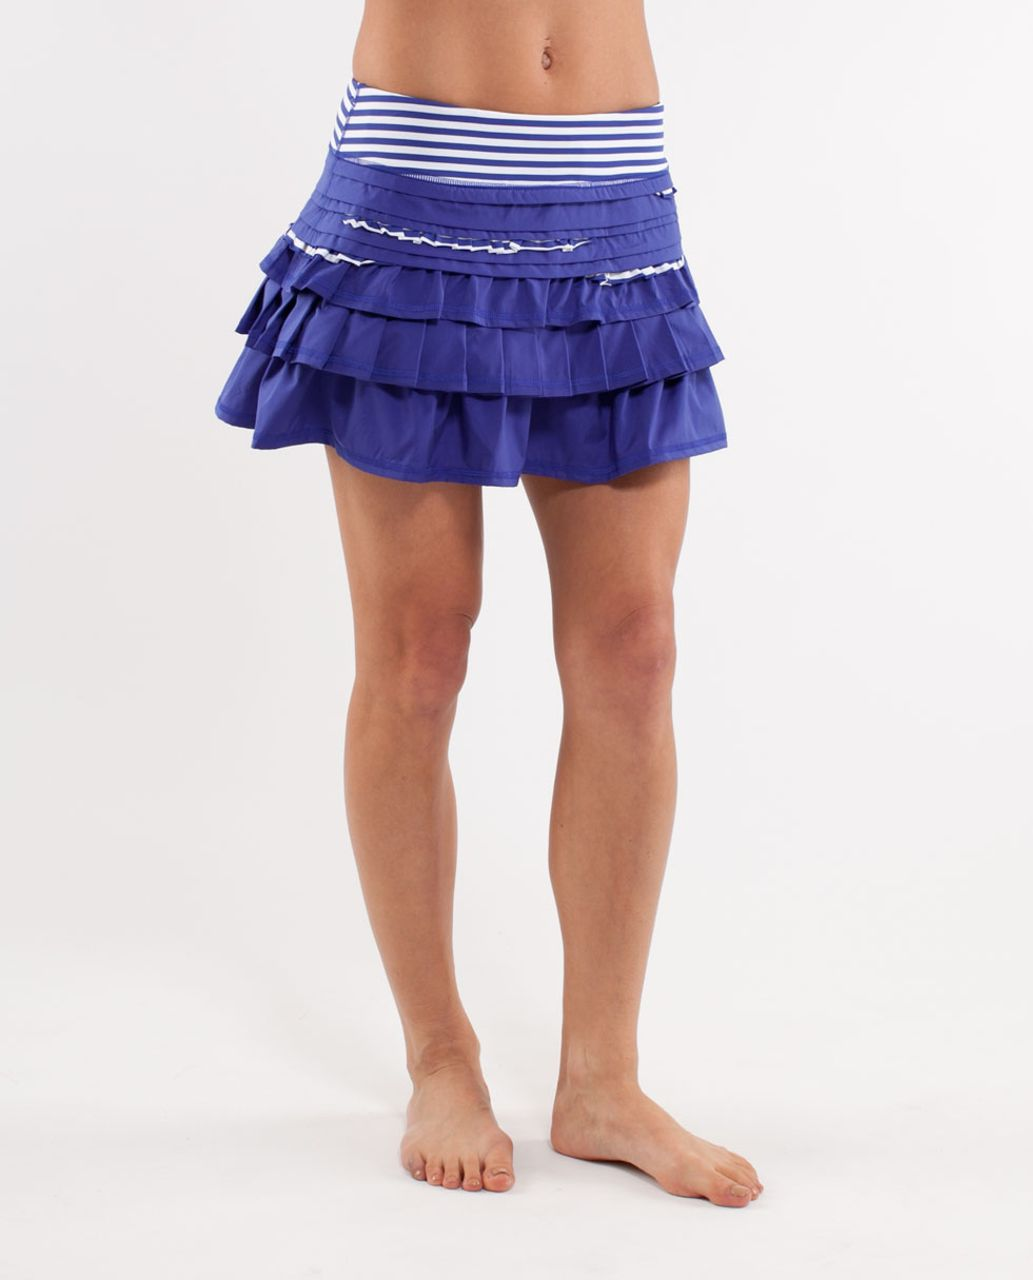 Lululemon Run:  Back On Track Skirt - Pigment Blue /  Pigment Blue White Narrow Bold Stripe